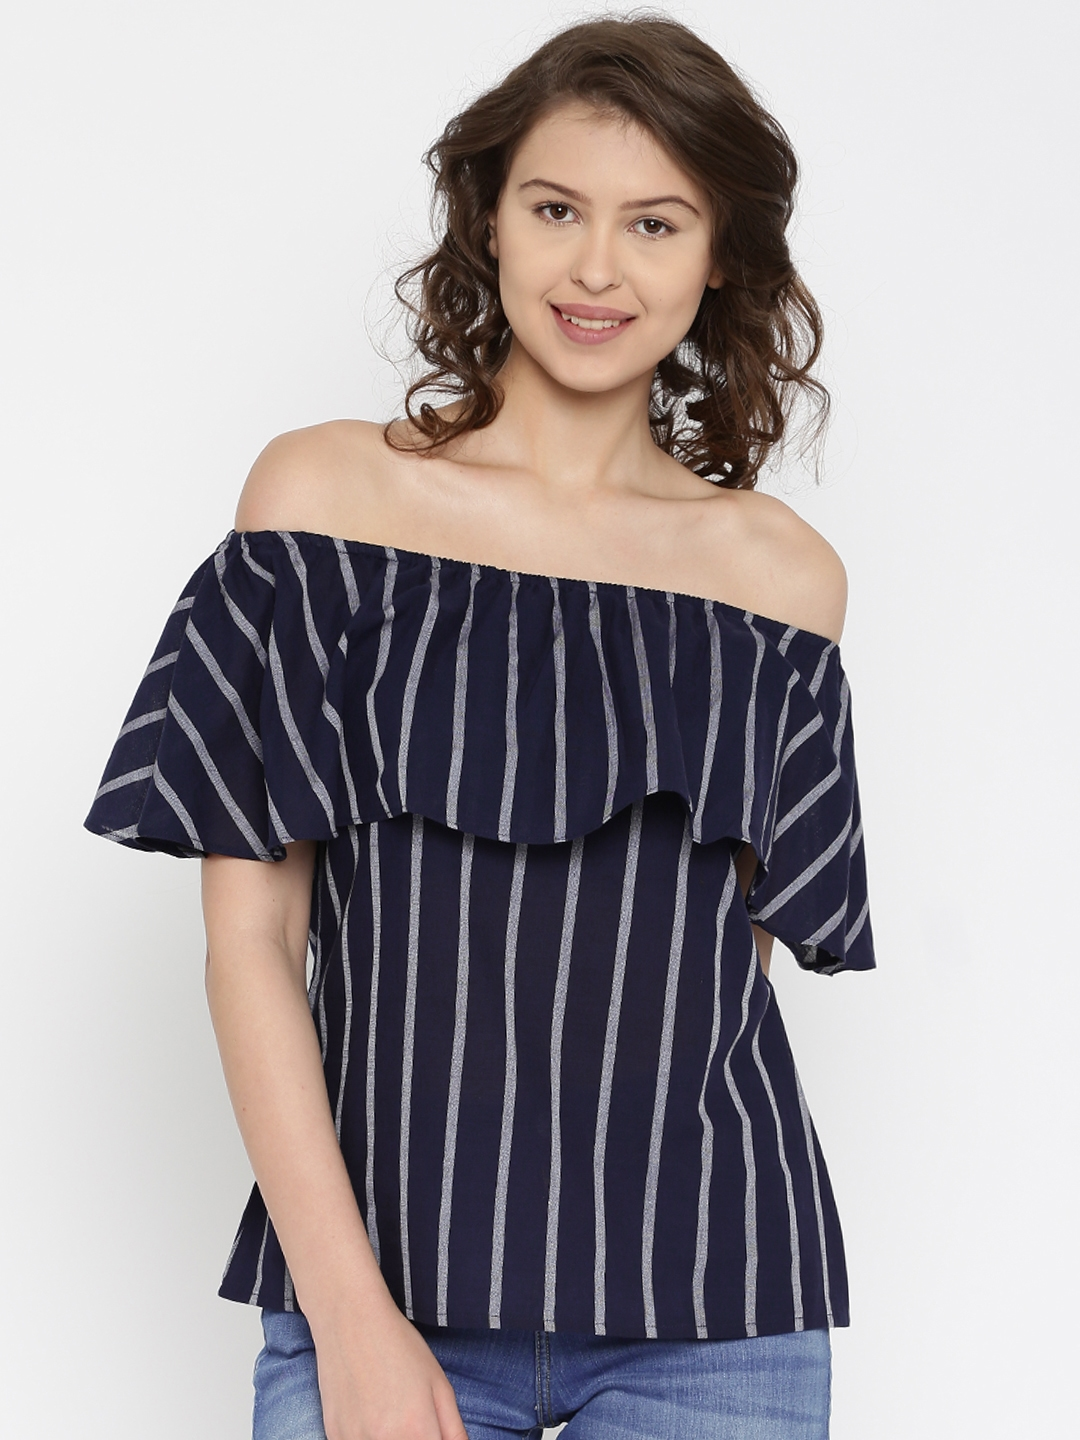 357ac127c35452 Buy AND Women Navy & White Striped Layered Bardot Top - Tops for ...